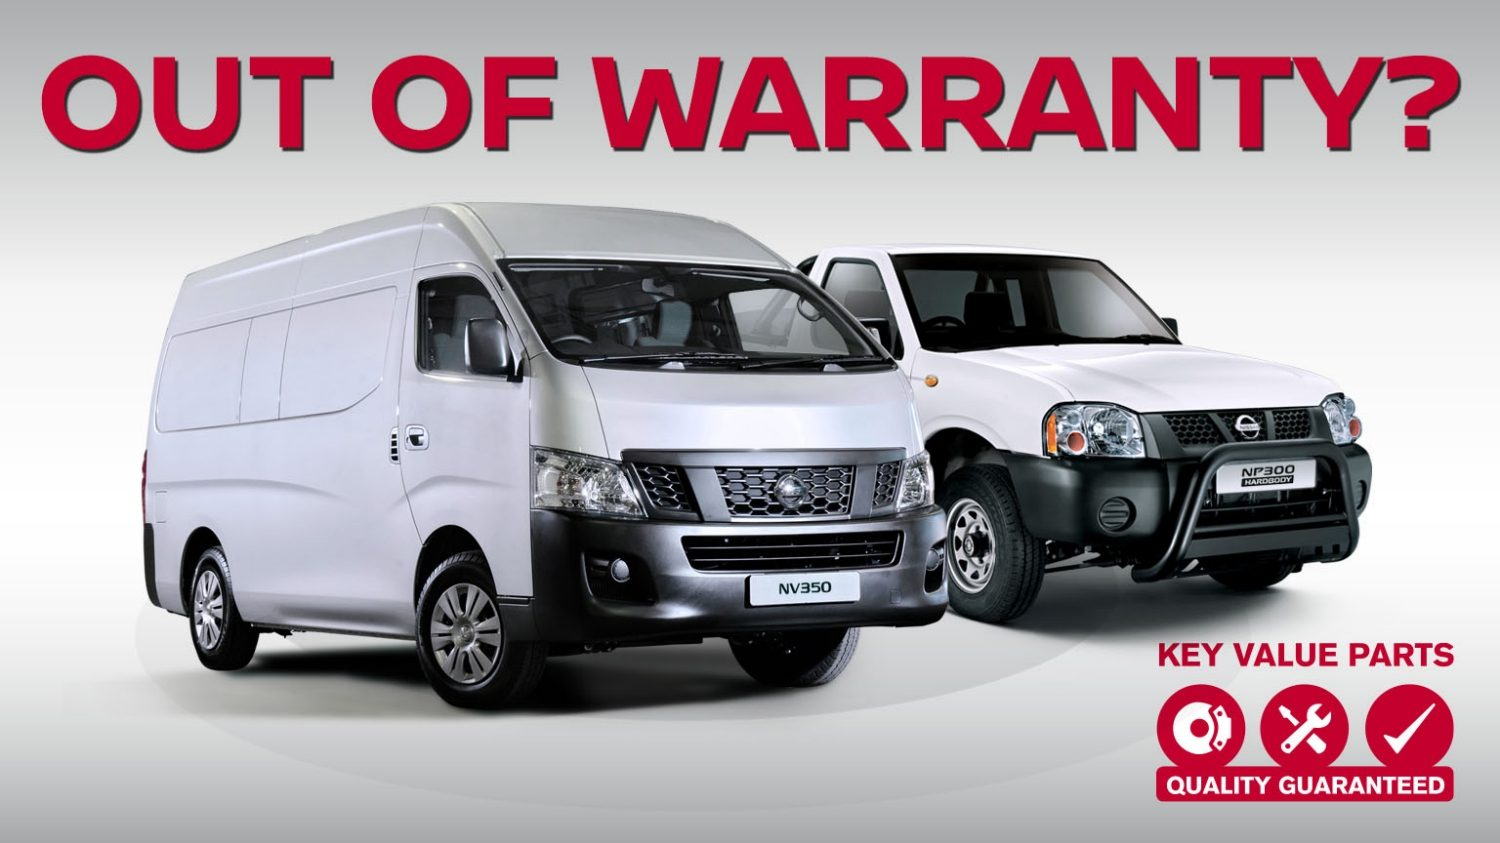 electric extended that cover the warrantywise nissan warranty first is uks it uk s announces in today aftermarket provider leading launches to vehicle offer vehicles for